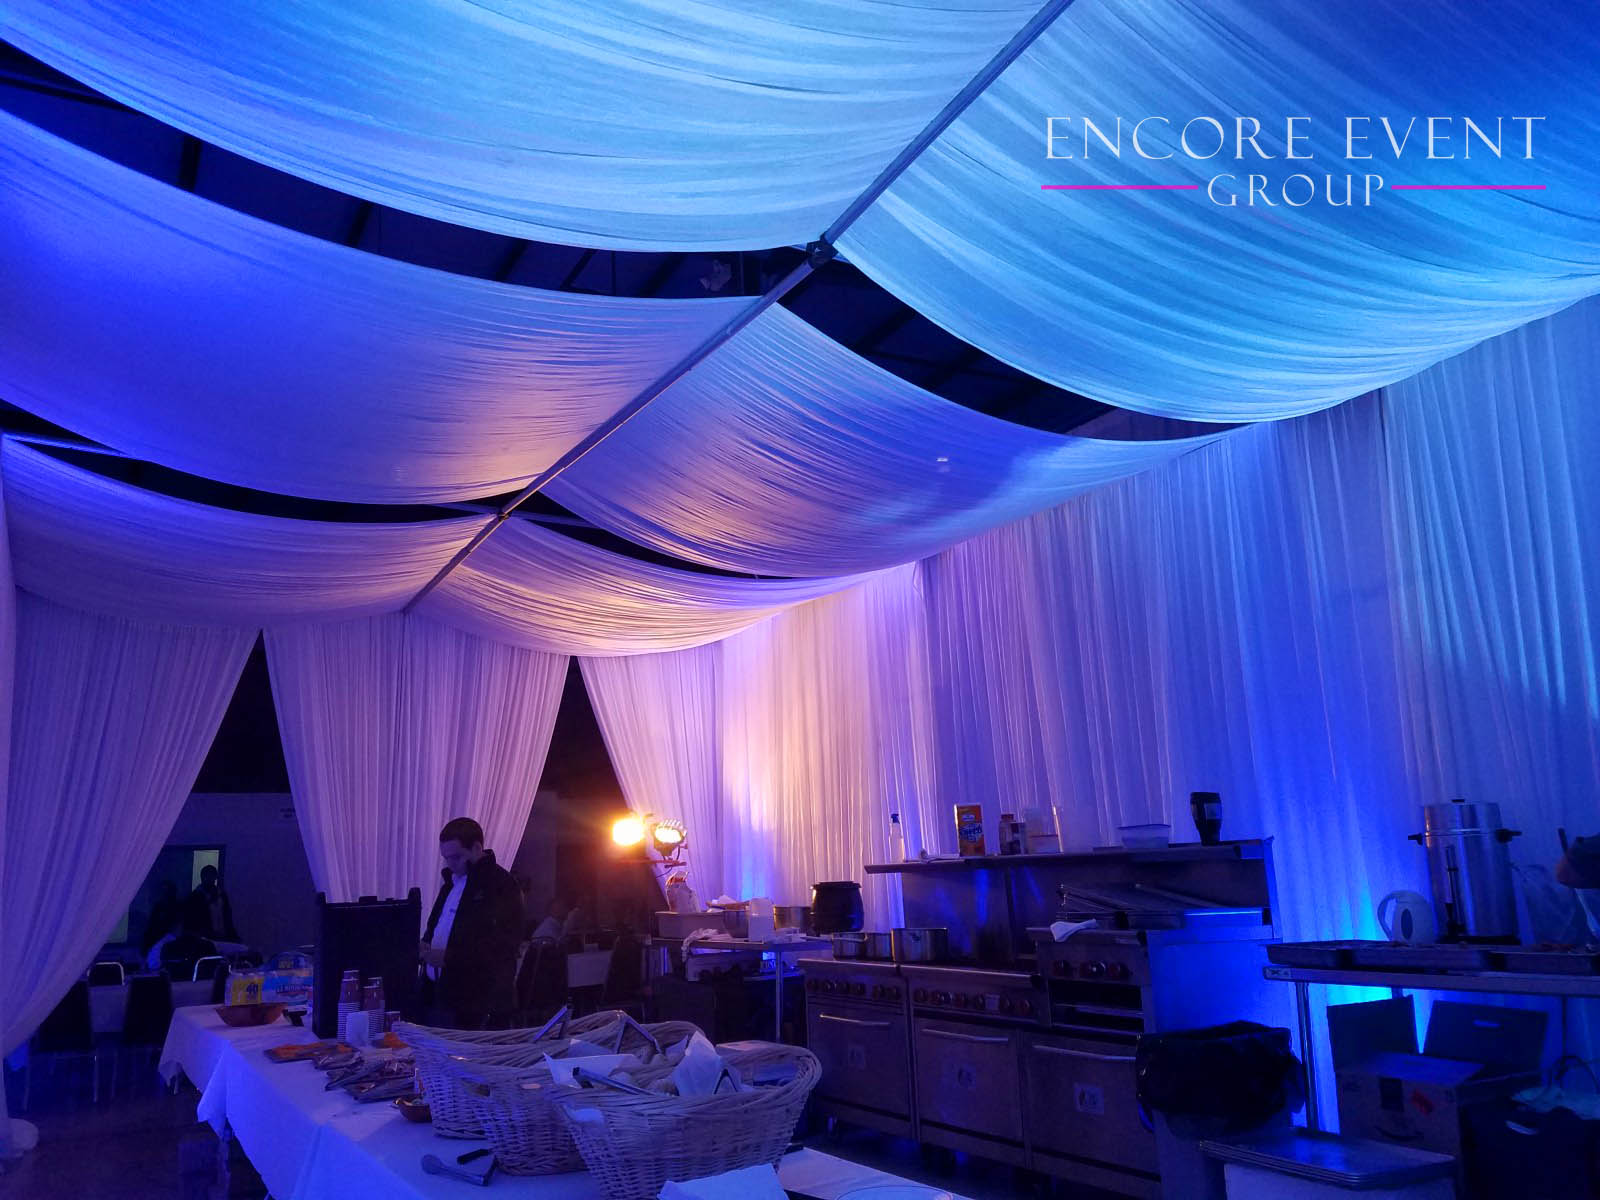 Corporate Event Canopy Draping Cabanas Encore Event Group